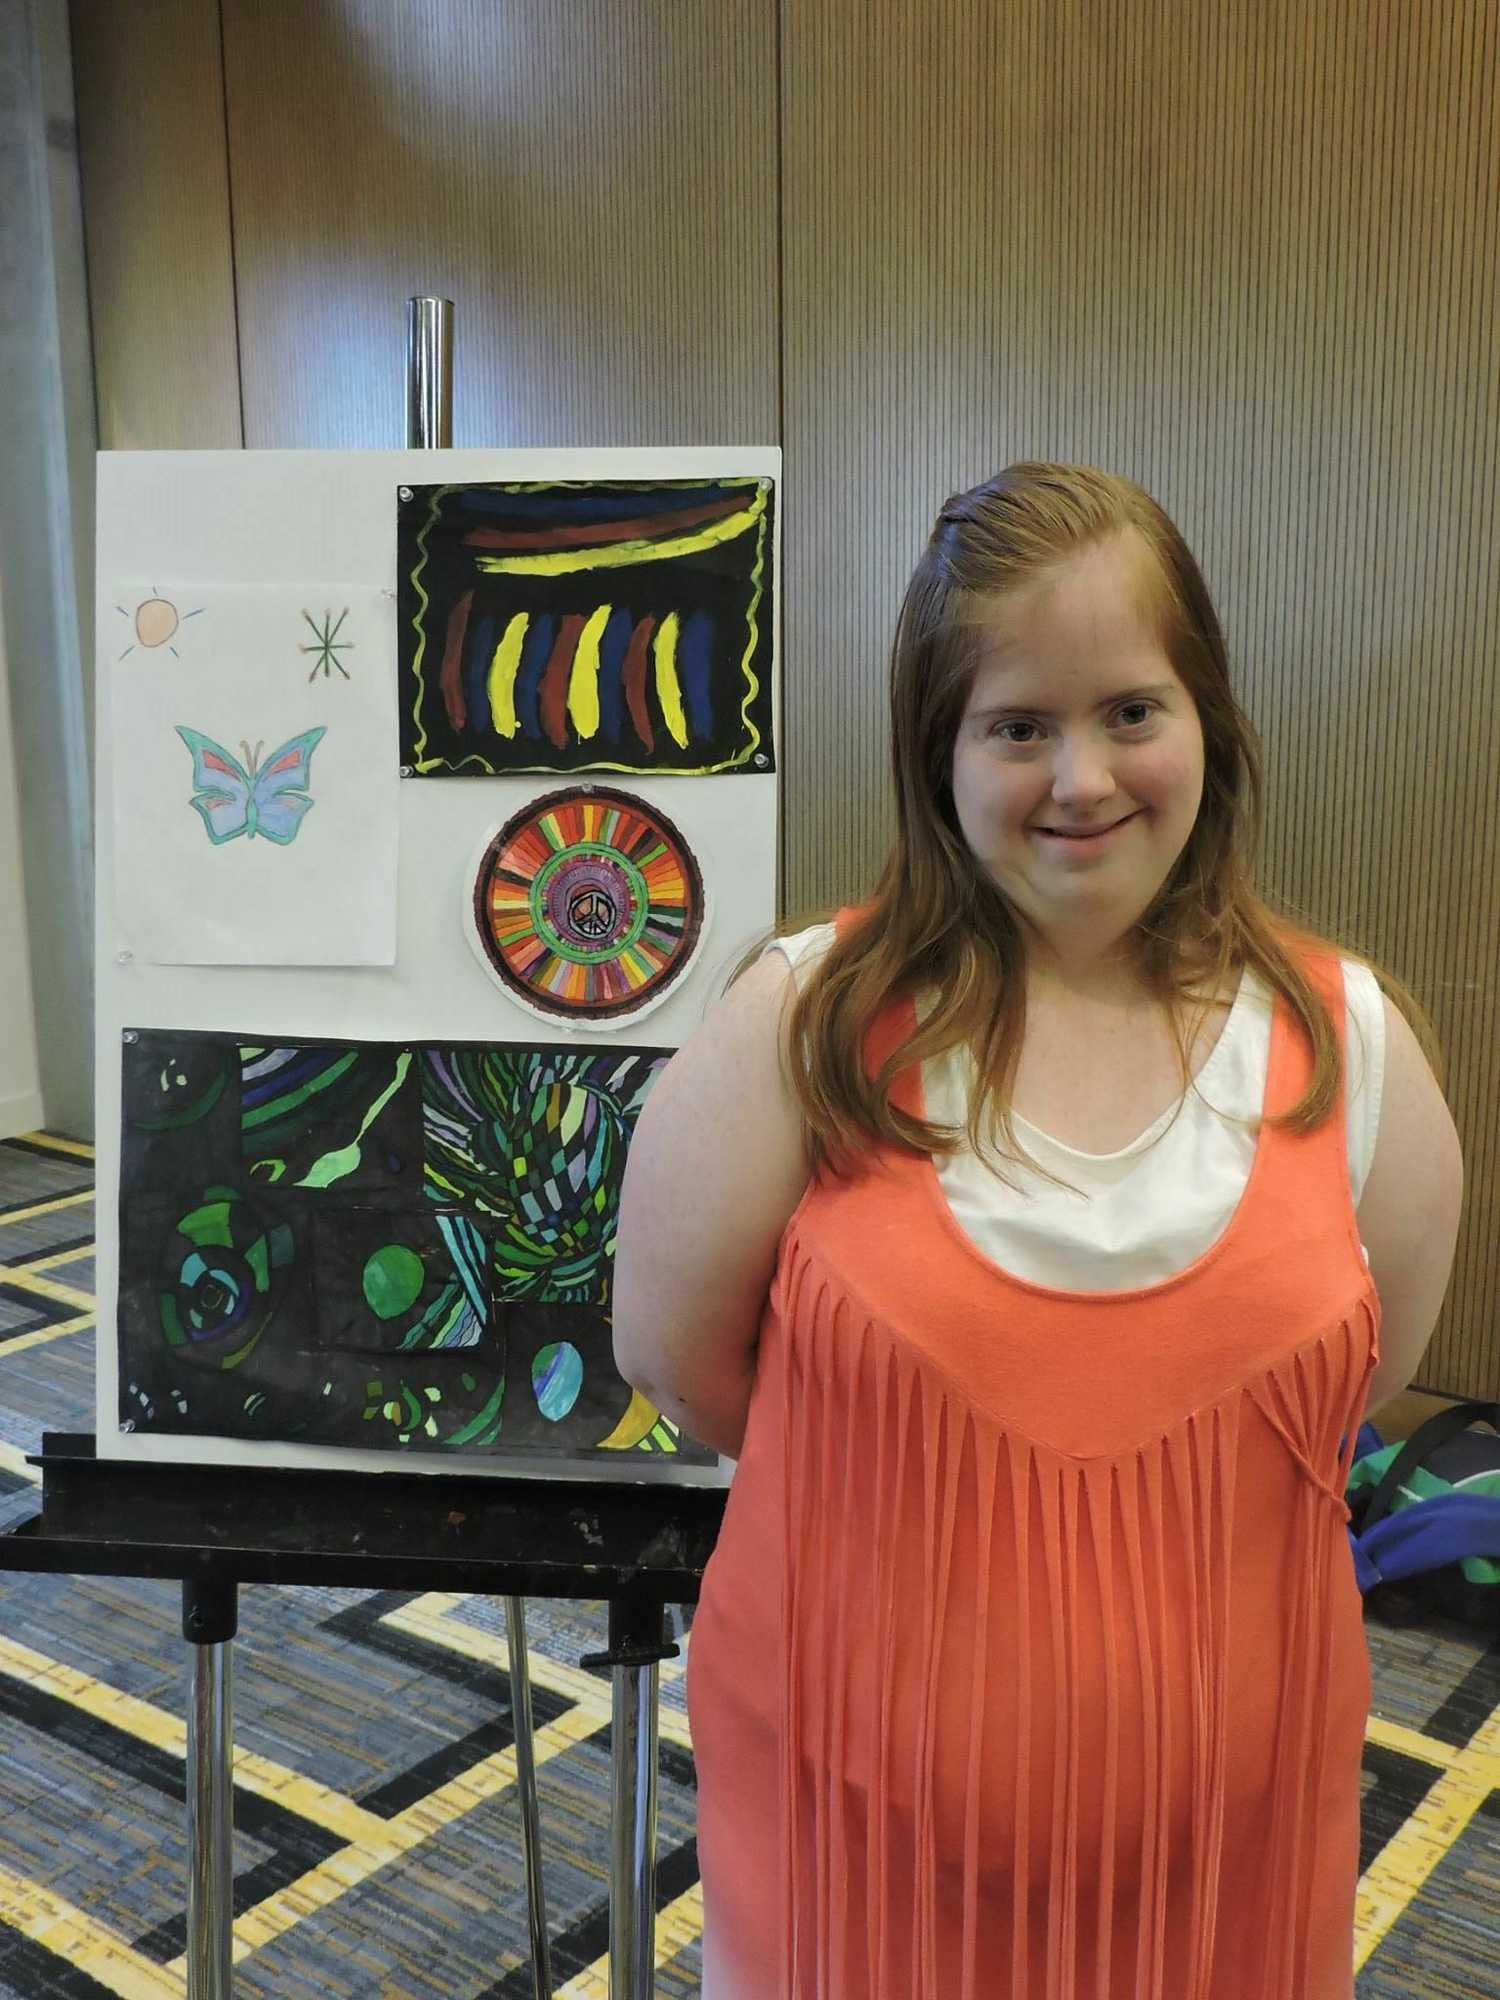 Moriah+McKinney+stands+in+front+of+her+artwork+on+display+during+the+ASNC+Appalachian+State+Artist+Showcase+on+Saturday+night+in+Parkway+Ballroom.+McKinney%E2%80%99s+favorite+piece+is+the+butterfly+drawing.+Photo+courtesy+of+Sydney+Messer.